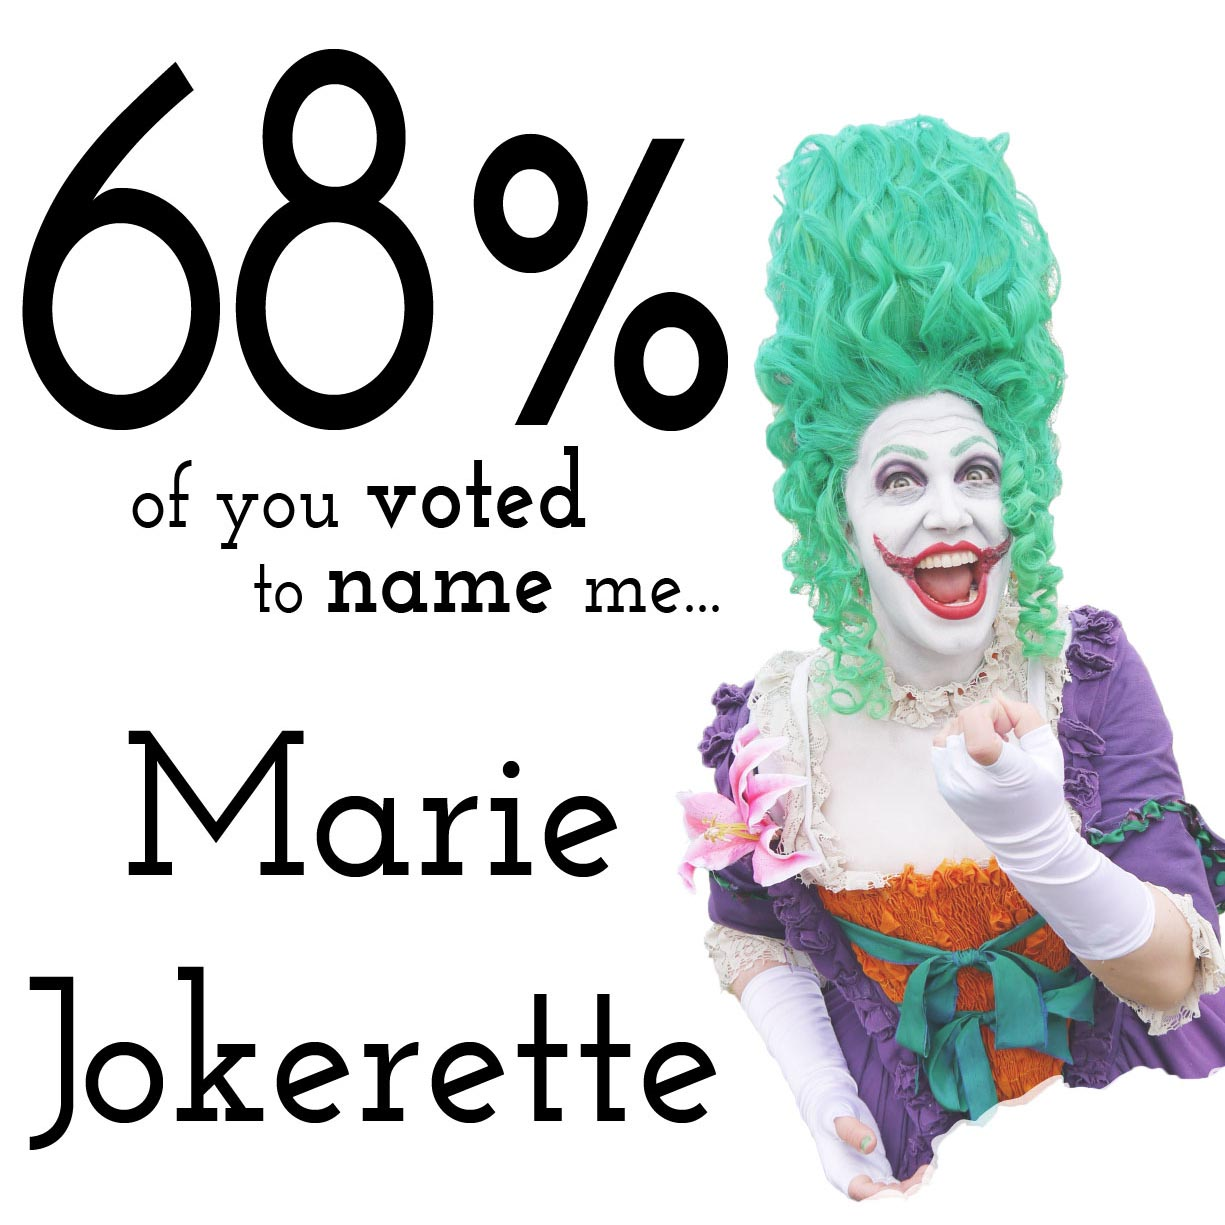 Marie Jokerette cosplay character name vote